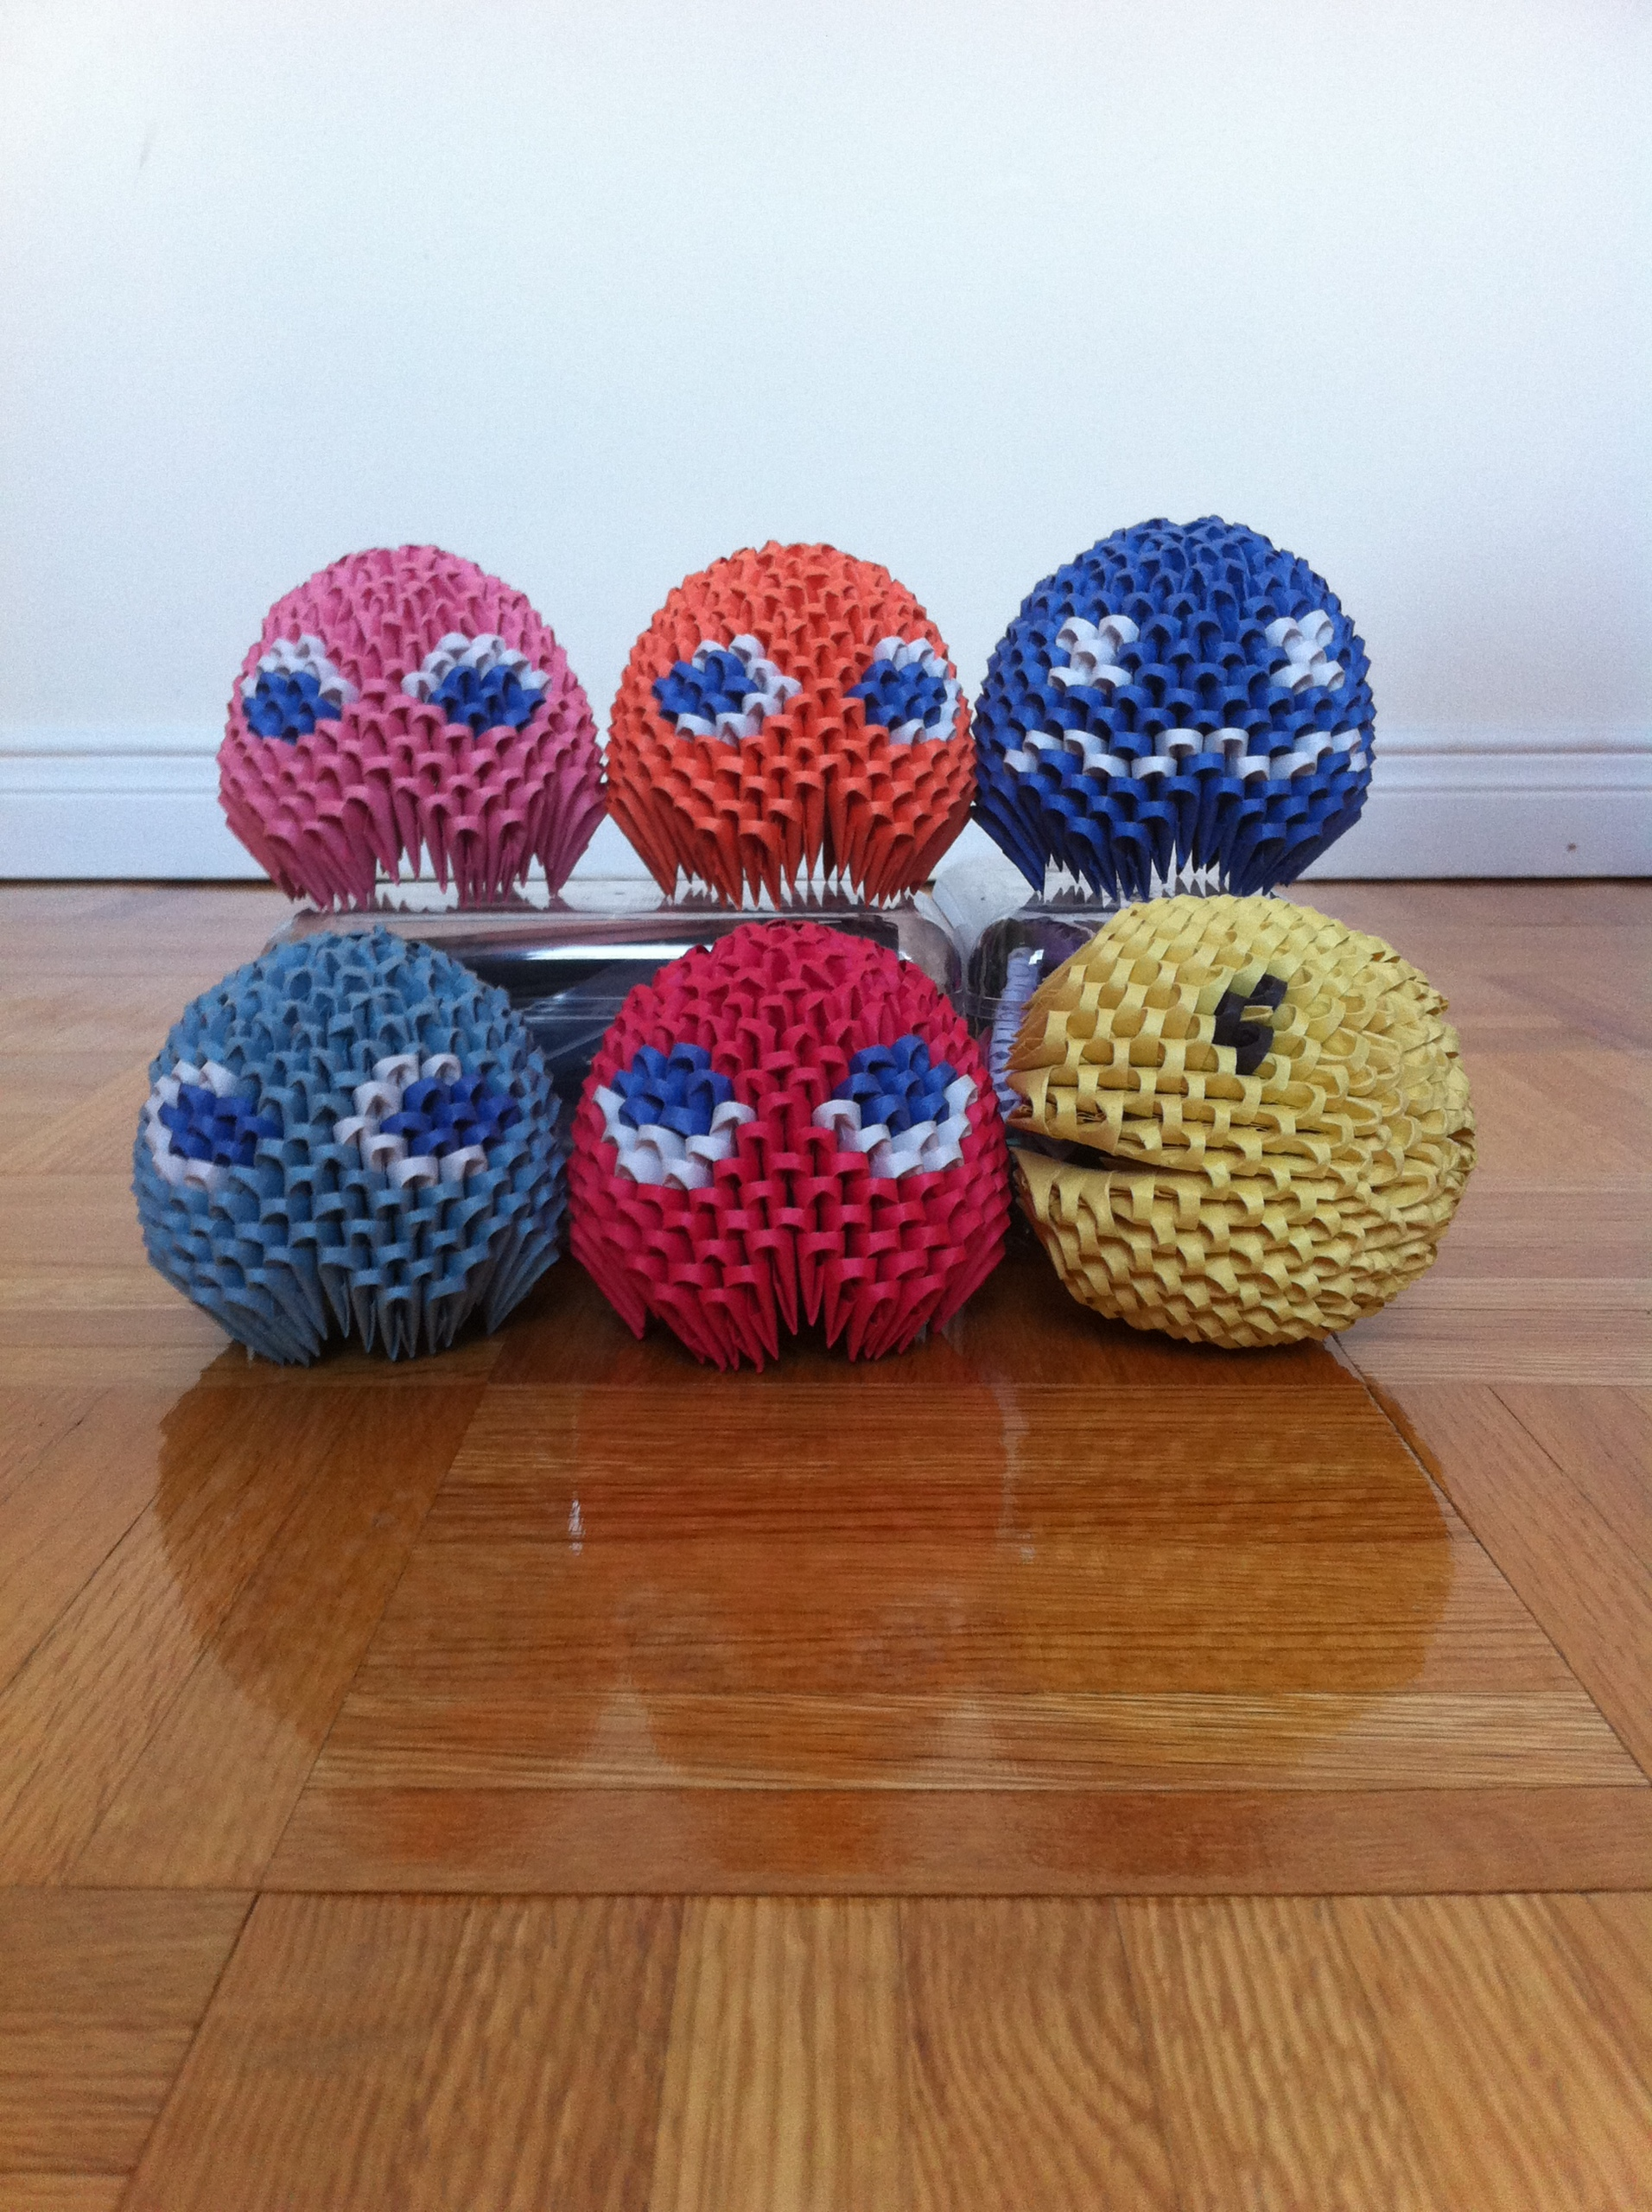 Origami Images 3D Pac Man HD Wallpaper And Background Photos